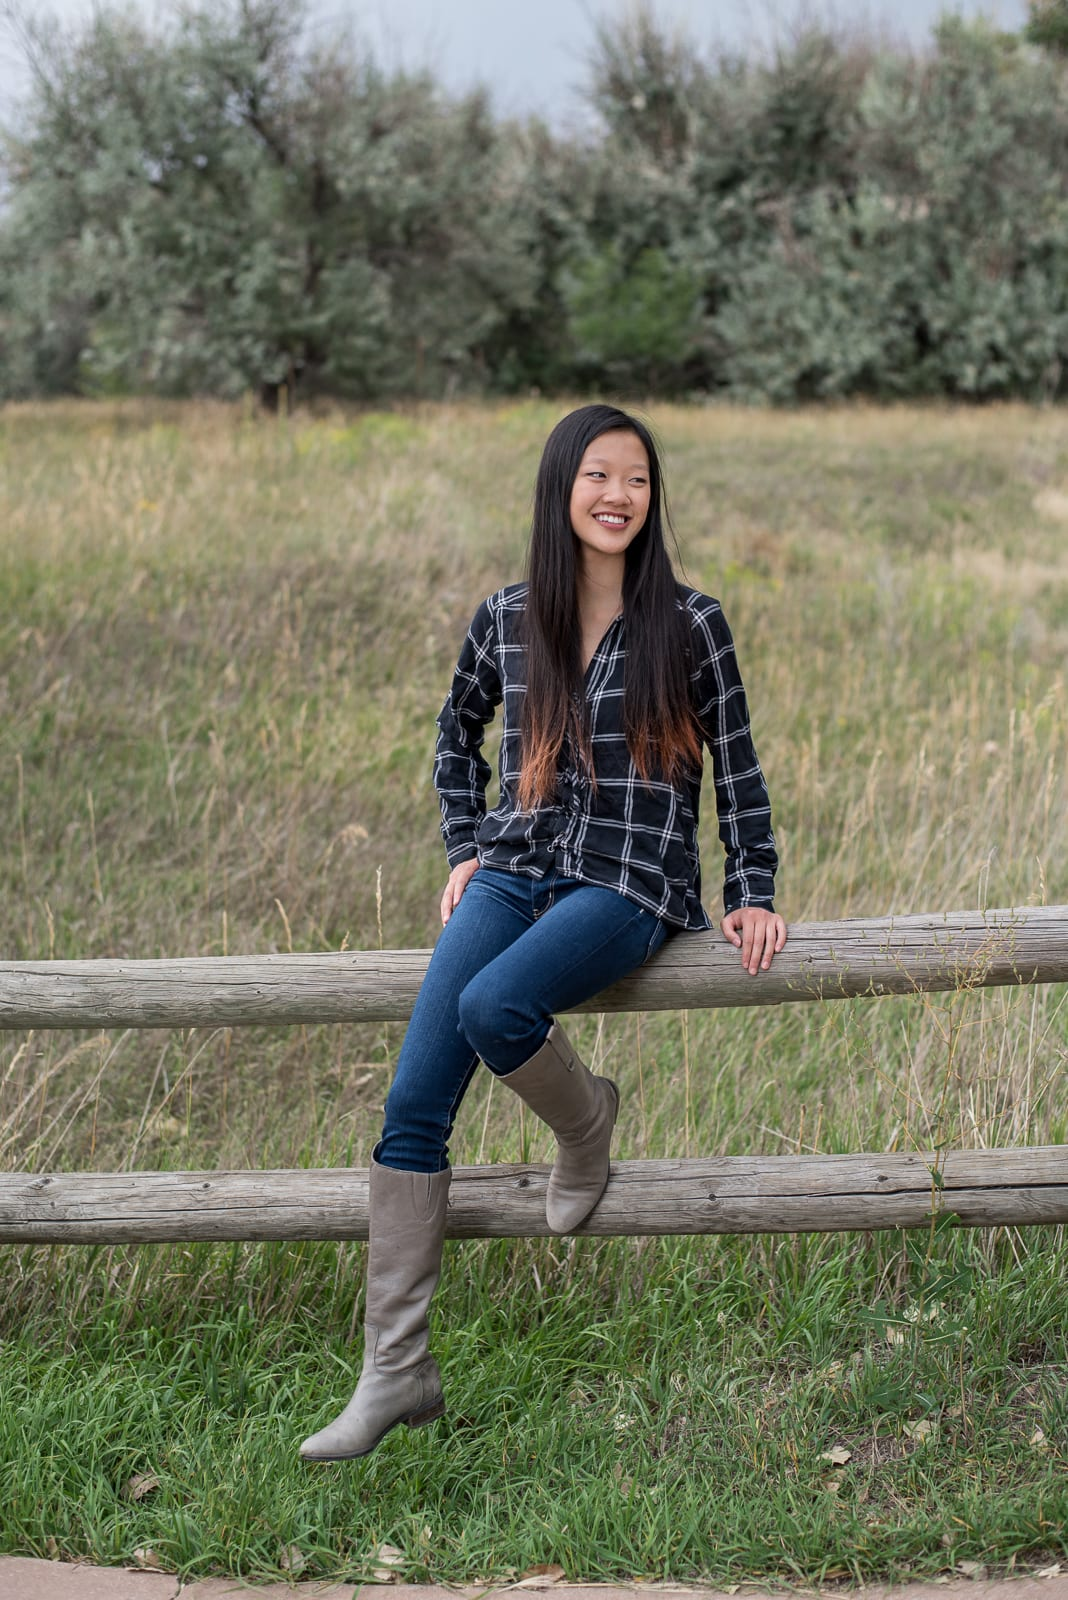 The Most Versatile Location | Portrait Photography | Cherry Creek Reservoir | From the Hip Photo